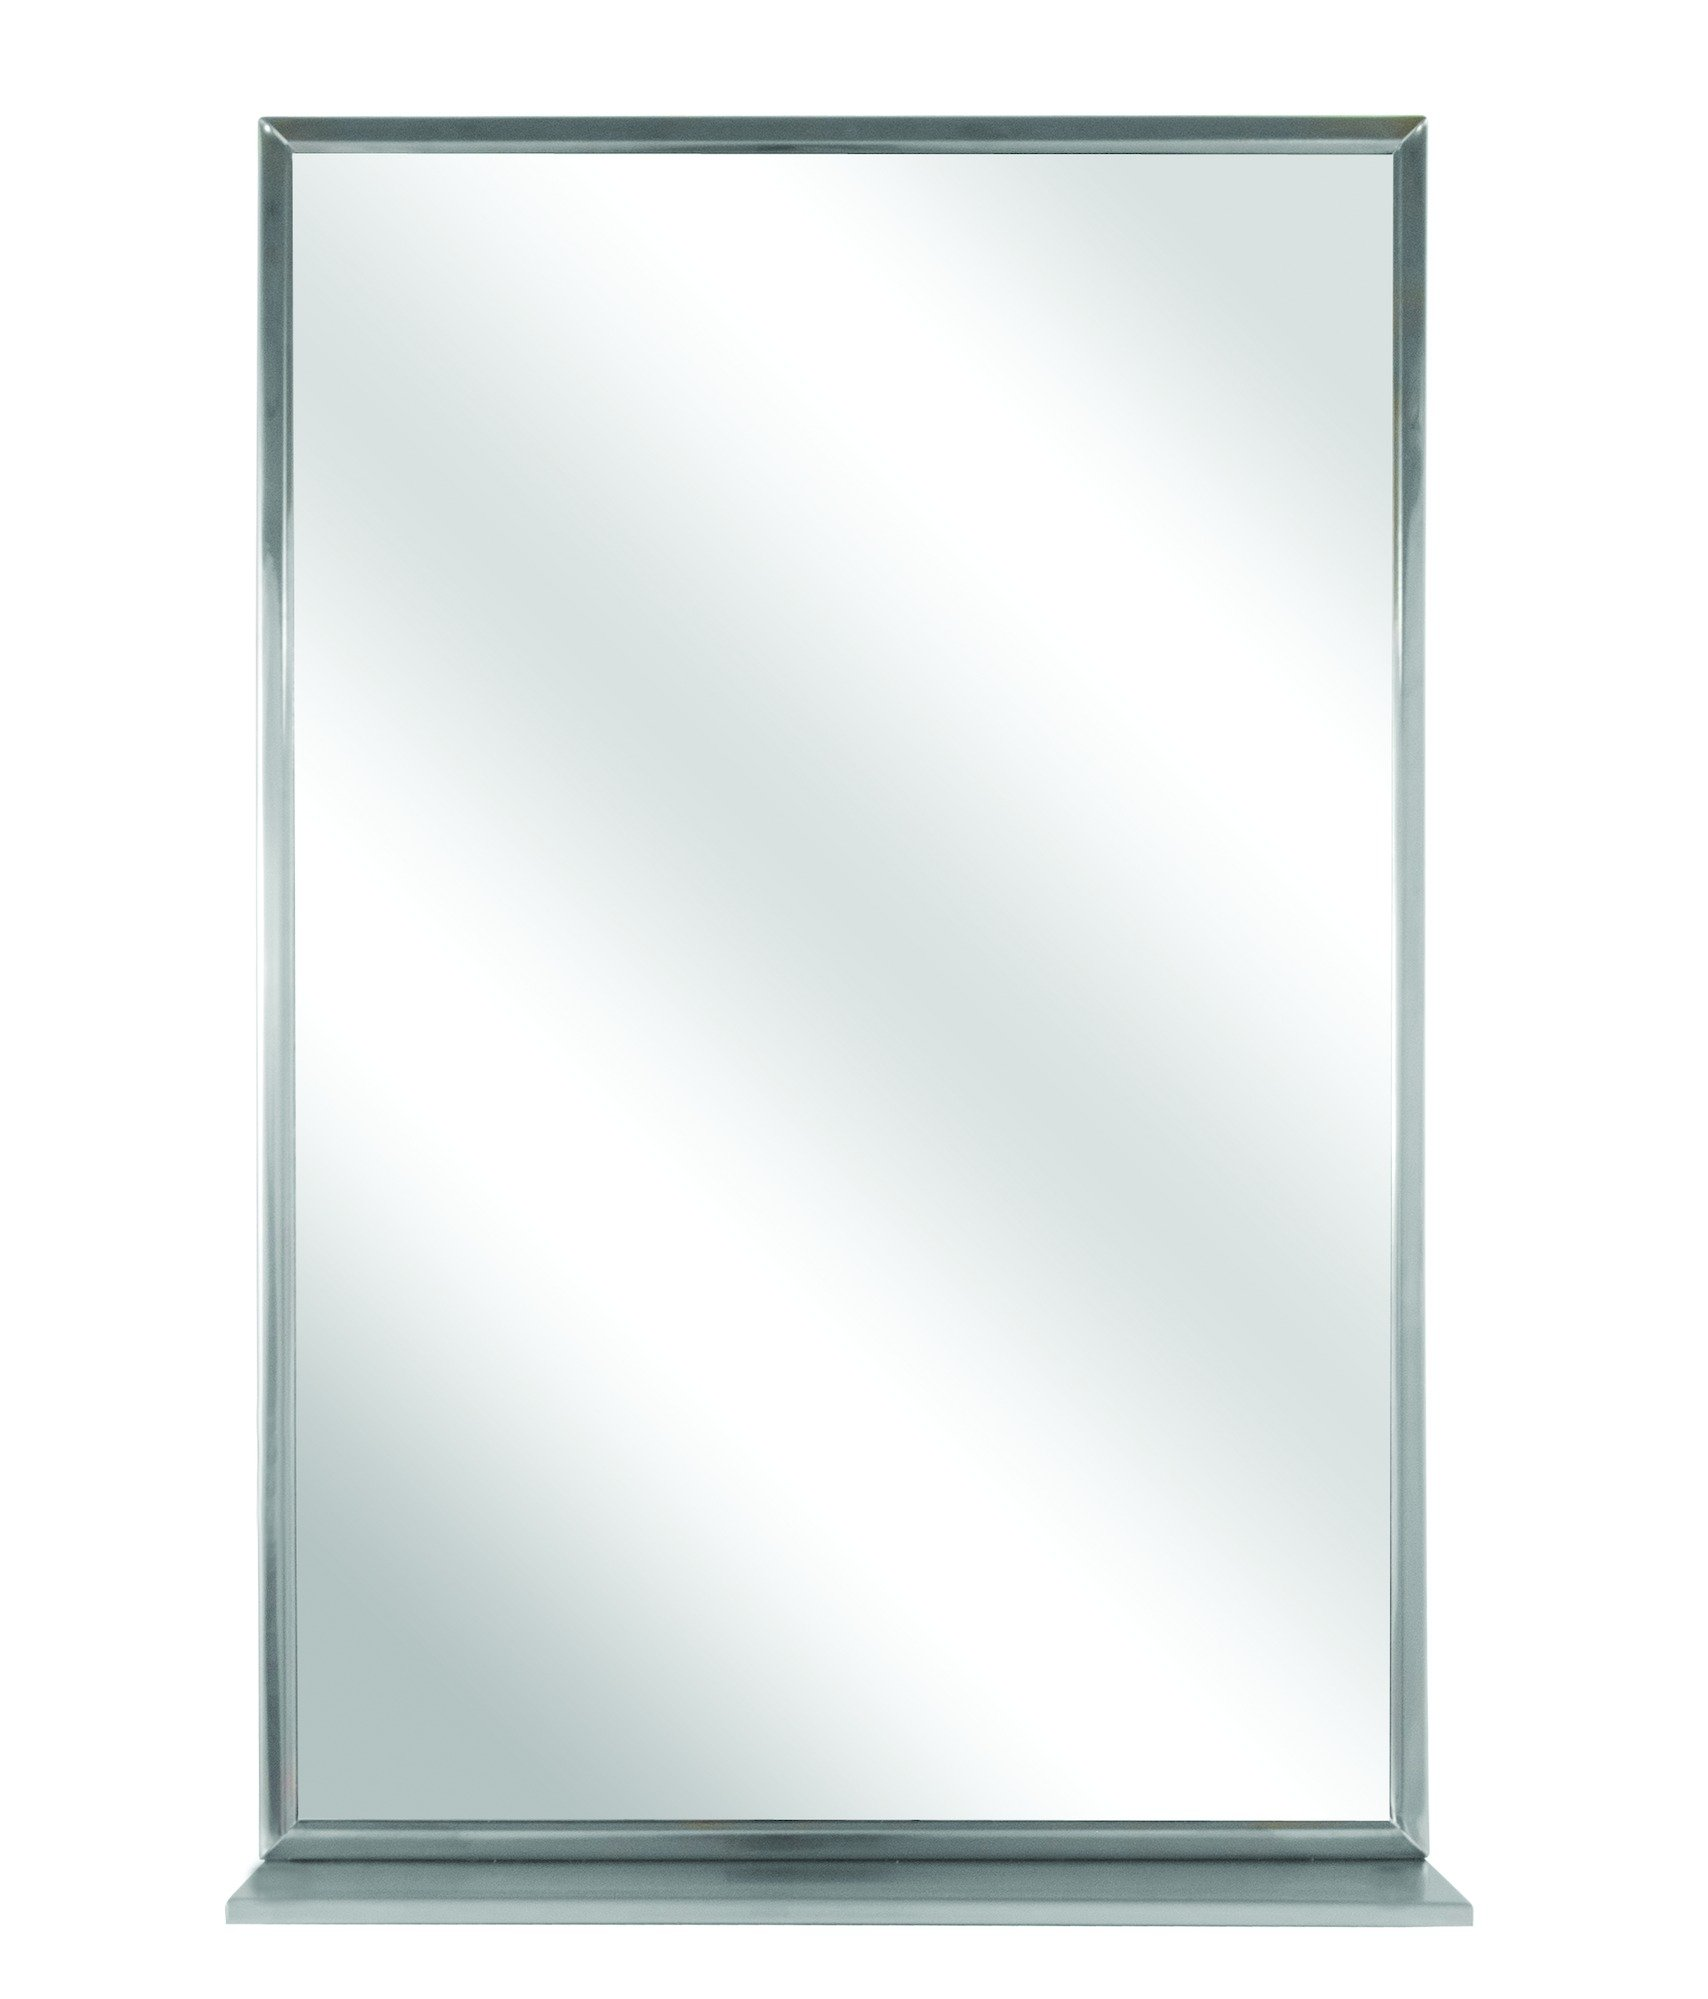 Channel Frame Mirror 7815 | Accurate Door & Hardware, Inc.